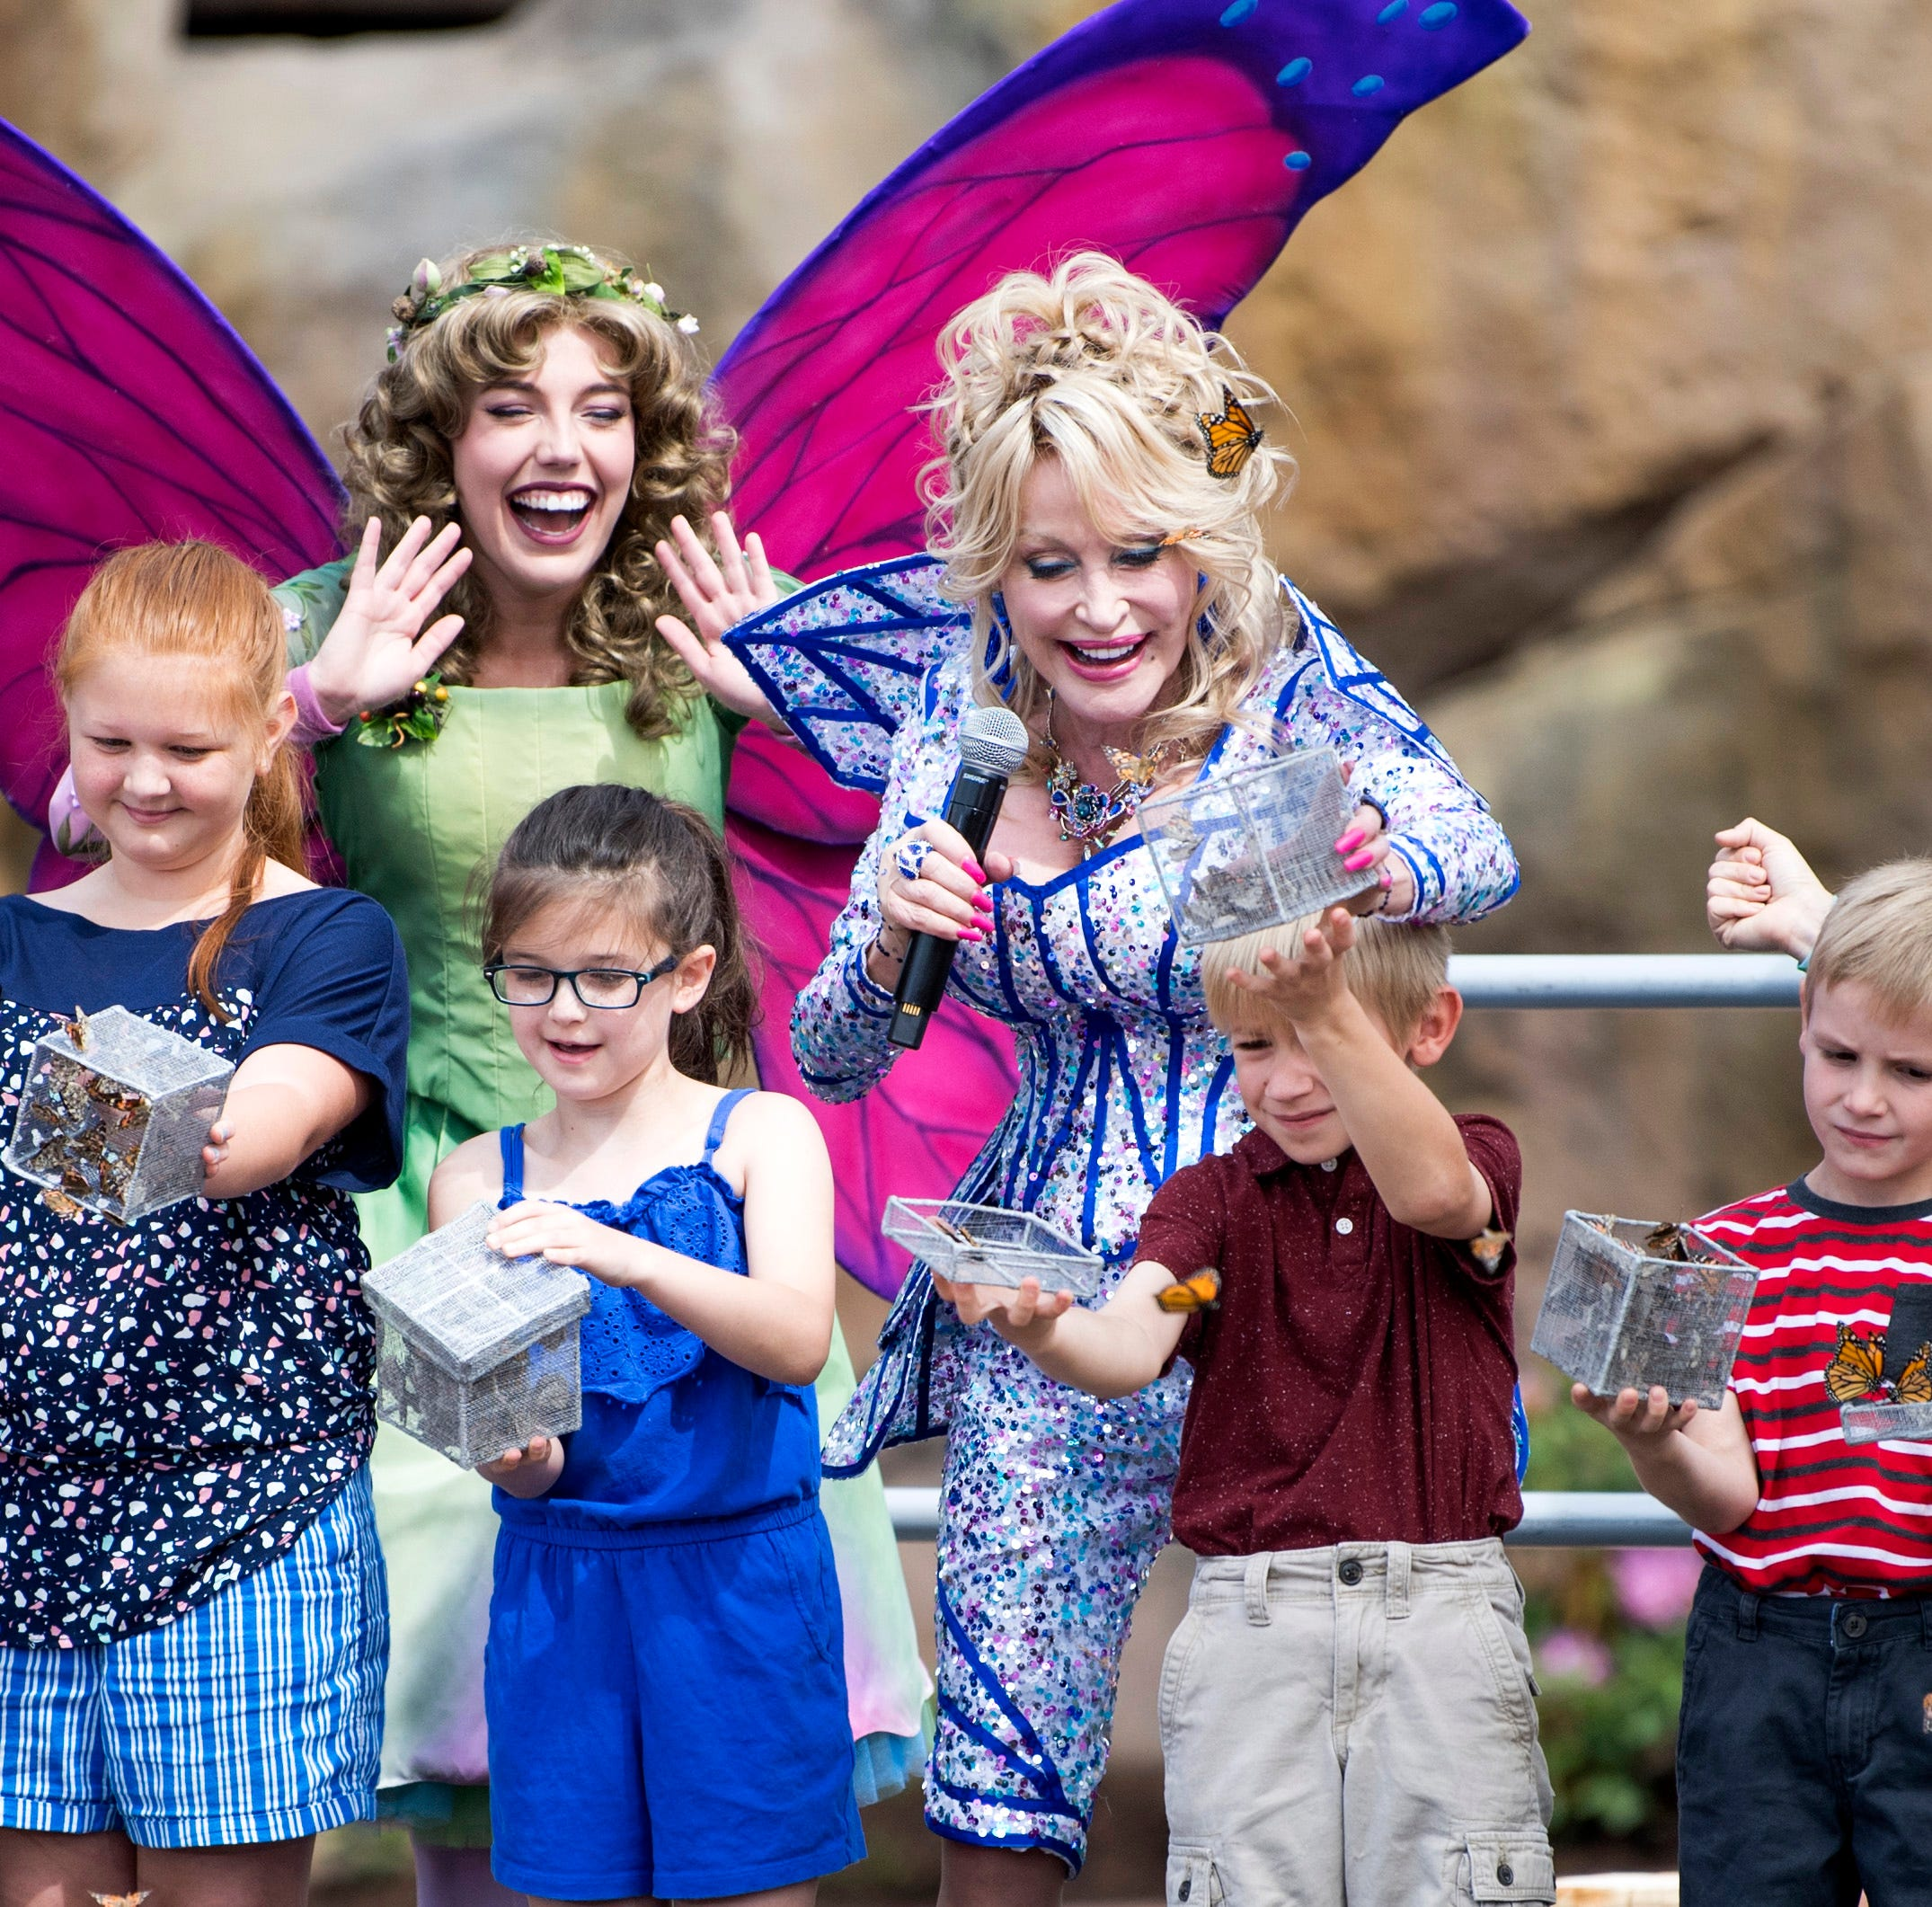 Dolly Parton opens Dollywood's Wildwood Grove Friday. Here's how the new area stacks up